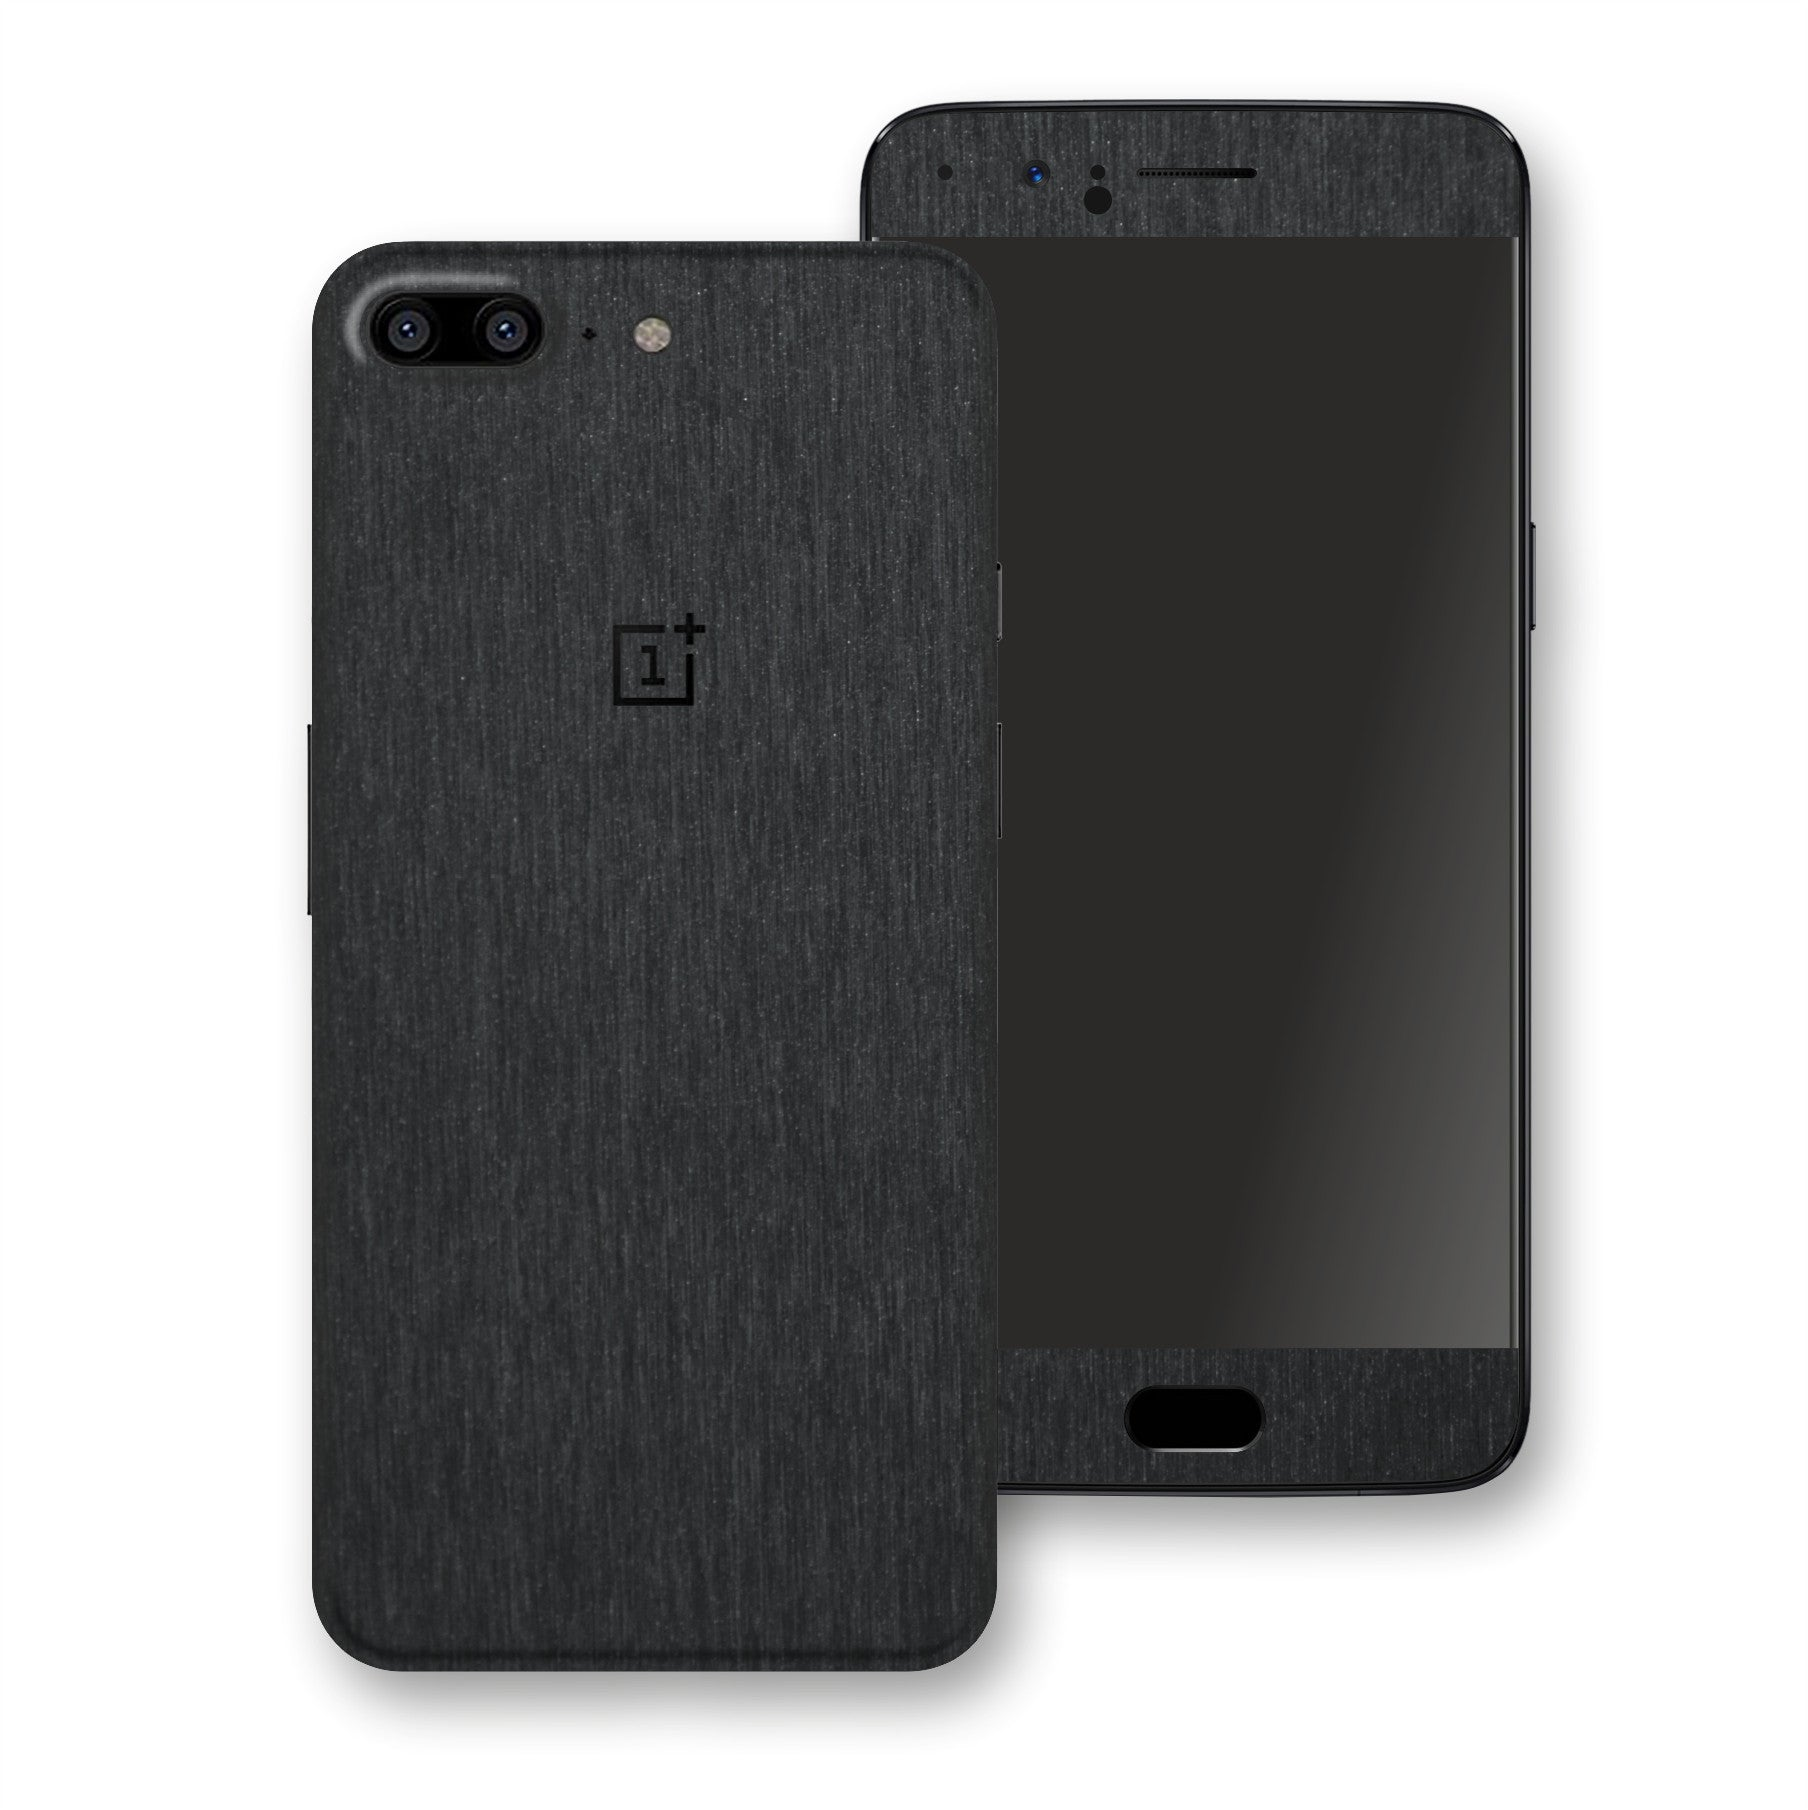 OnePlus 5 Brushed Black Metallic Metal Skin, Decal, Wrap, Protector, Cover by EasySkinz | EasySkinz.com